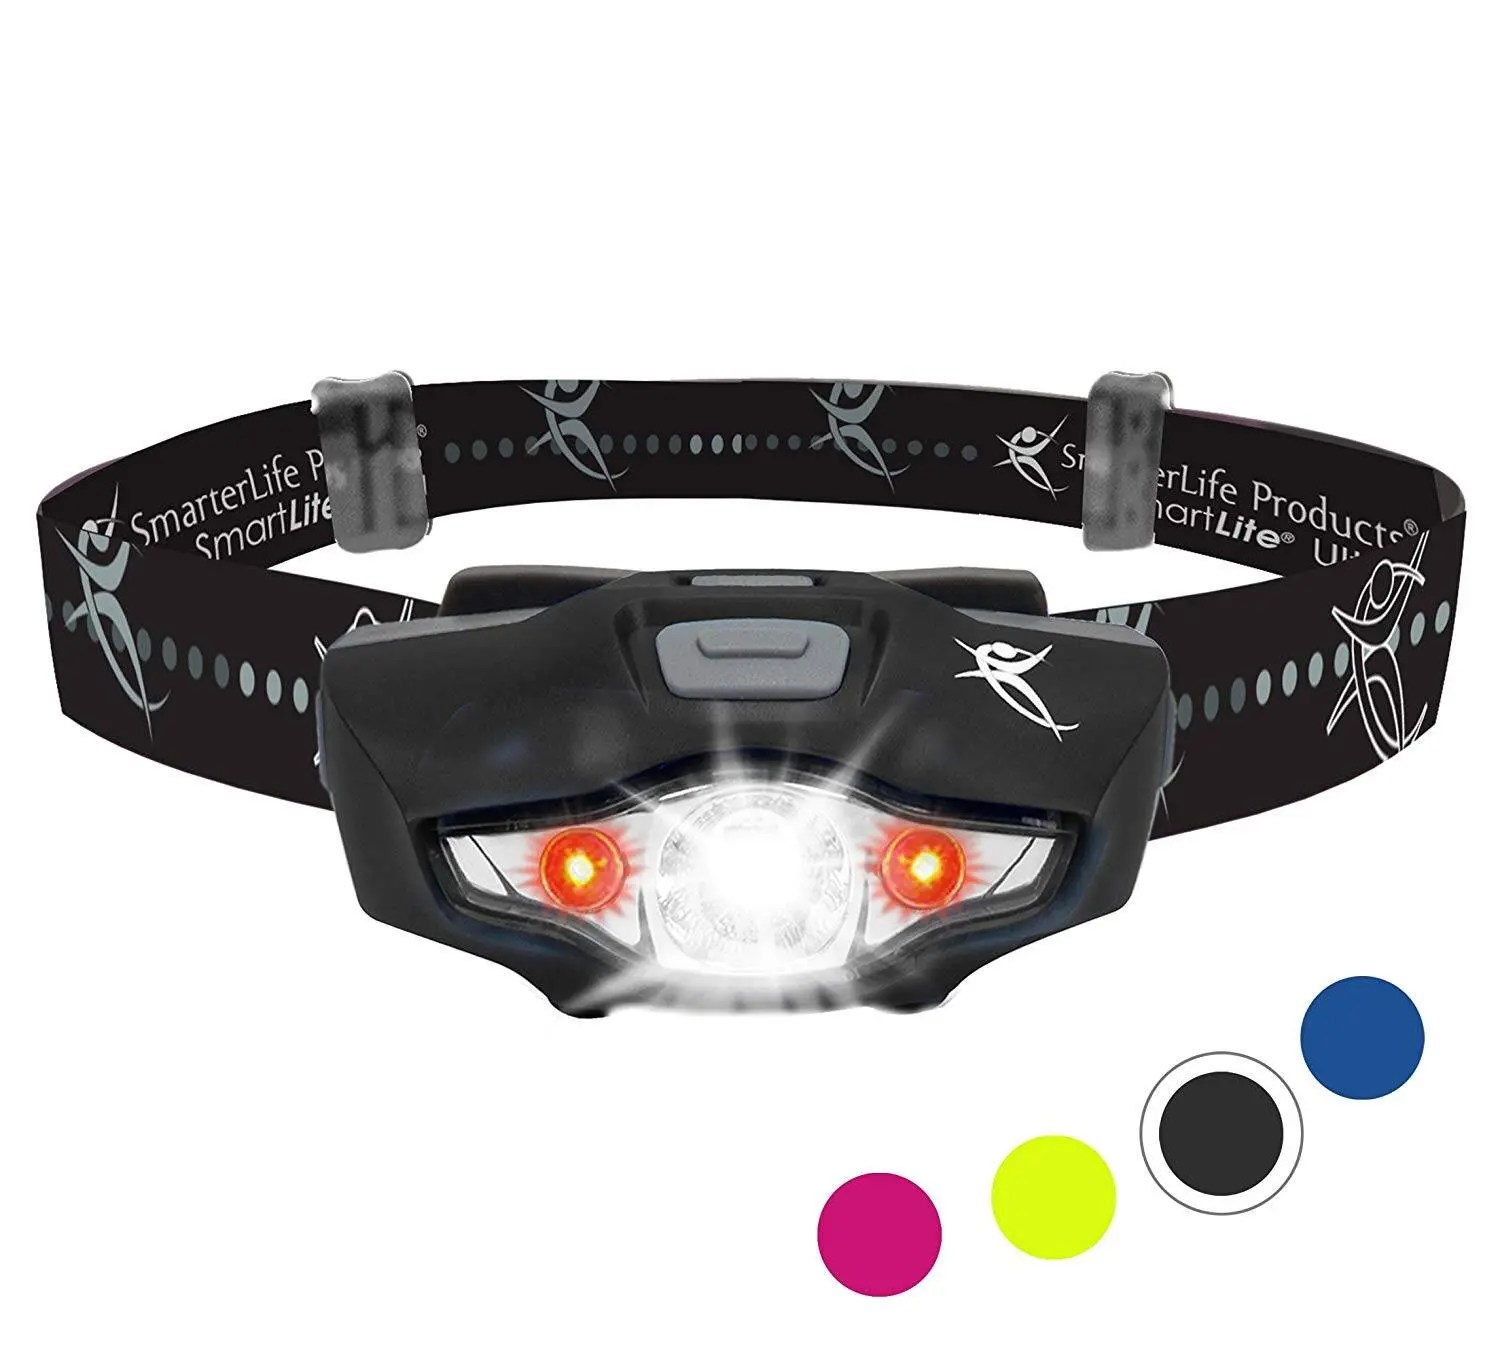 SmarterLife Headlamp with LED CREE